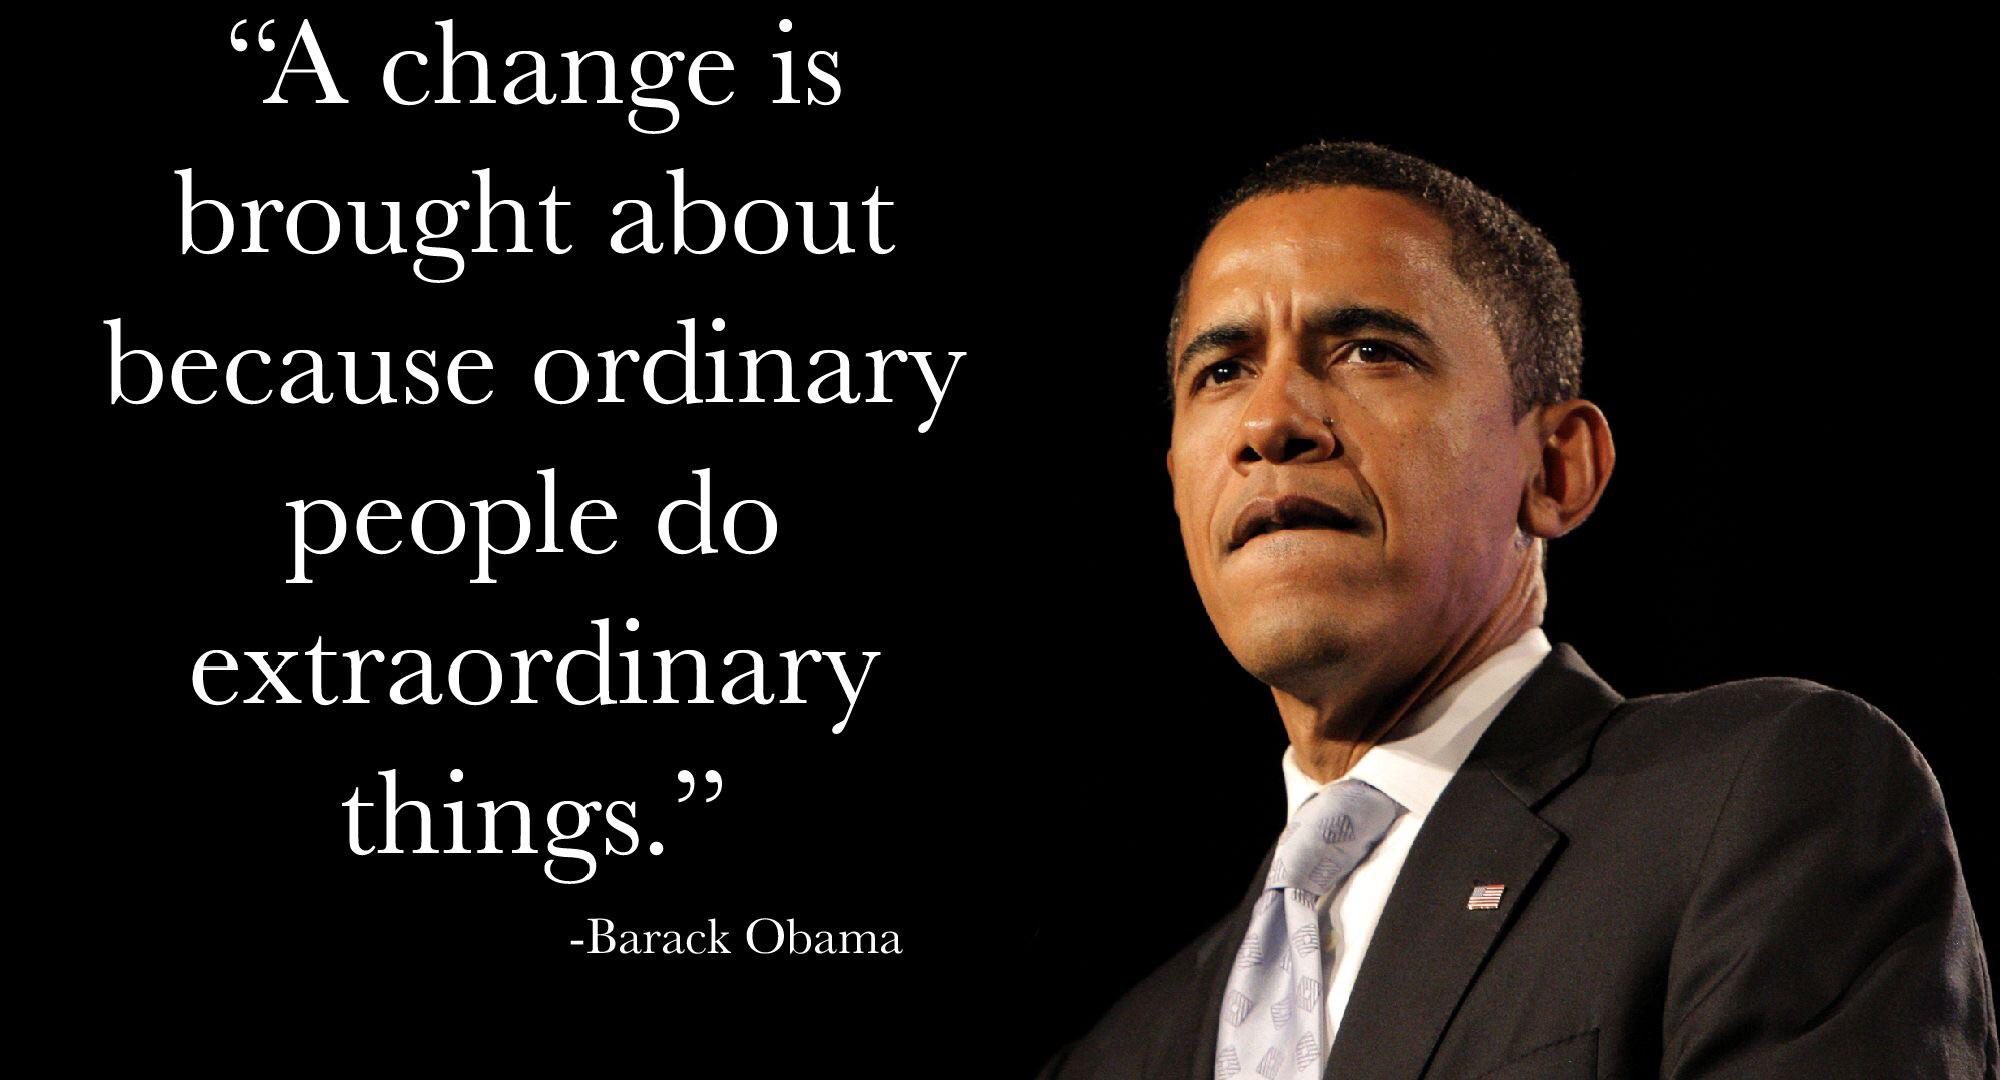 """A change is brought about because ordinary people do extraordinary things."" -Barack Obama [2000×1080]"